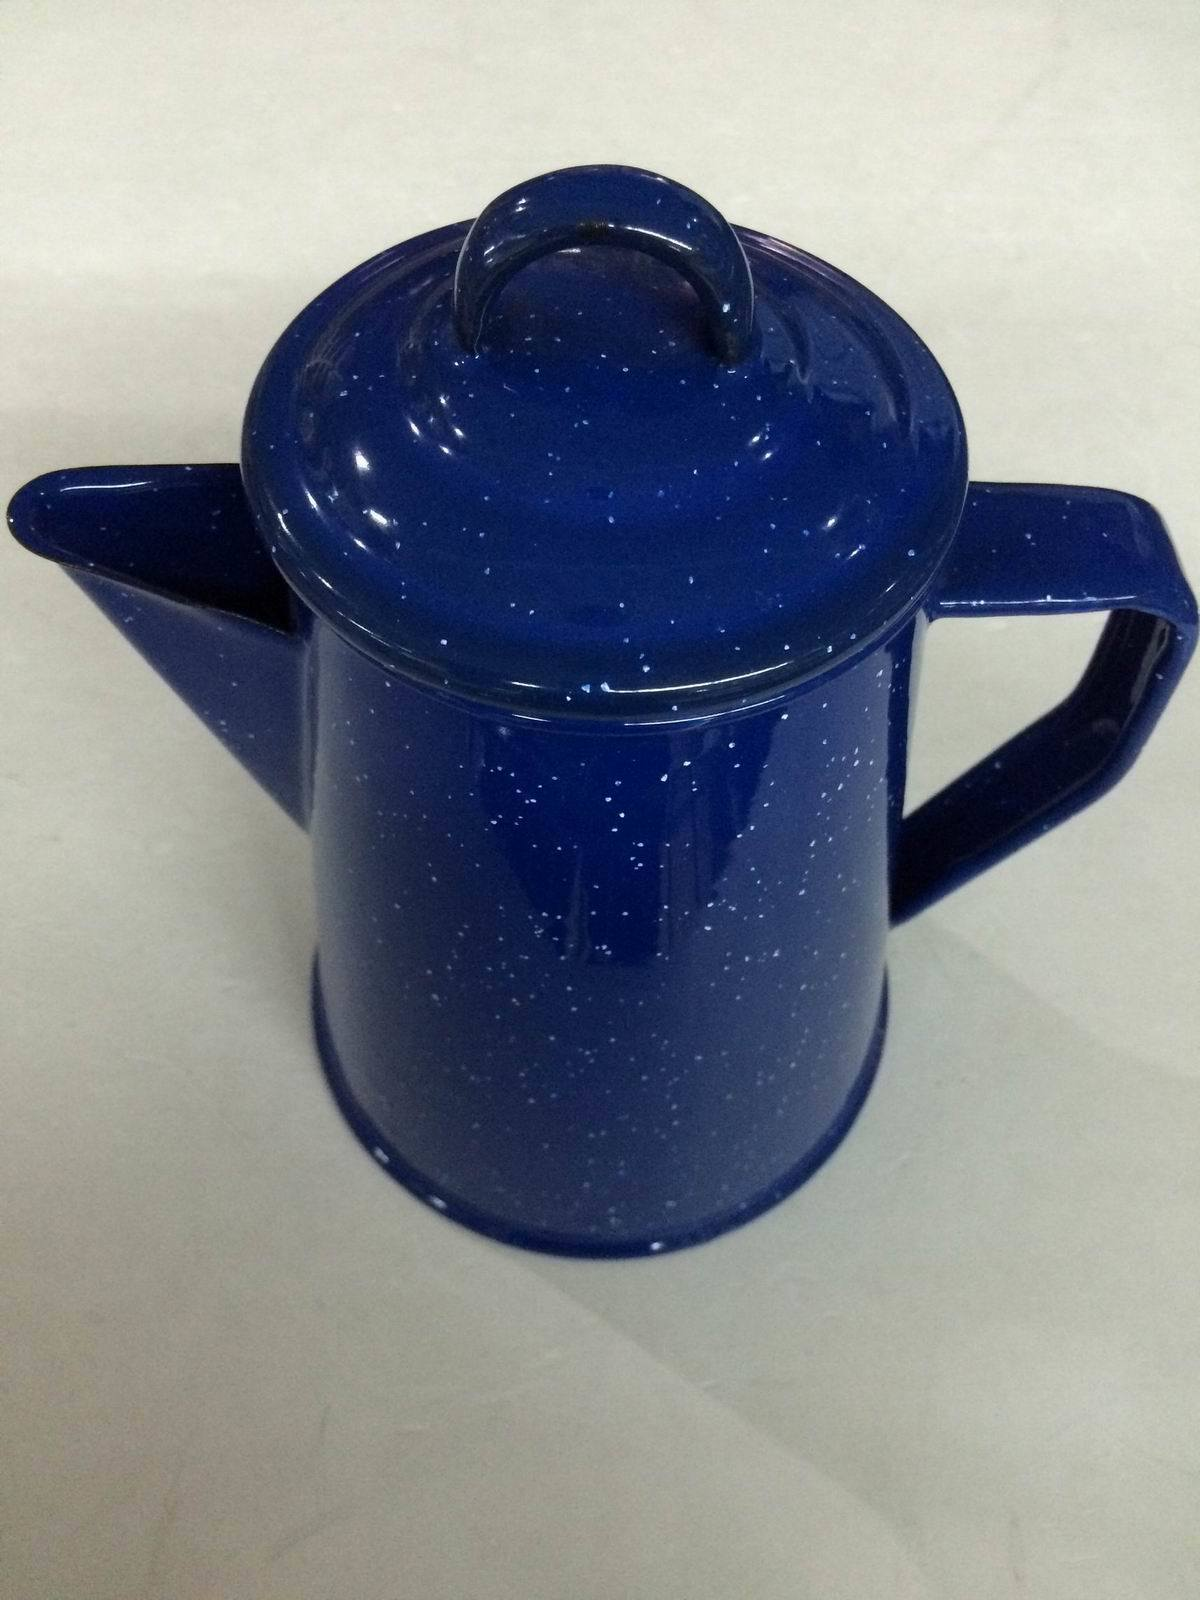 Night Sky Style Porcelain Enamel Teapot Kettle